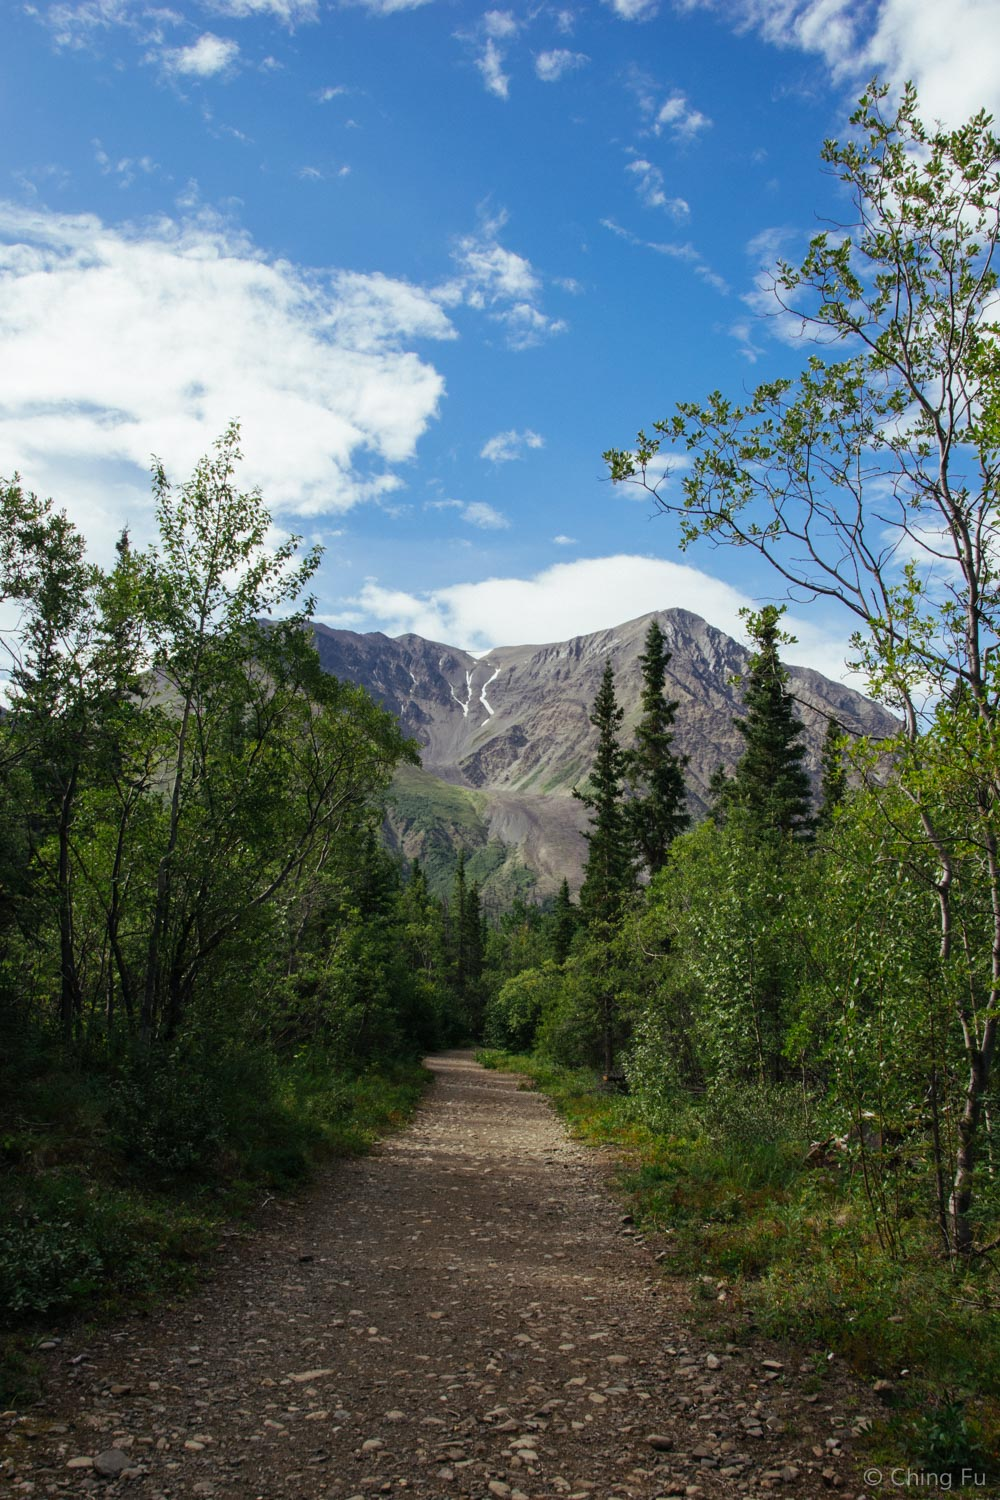 View on the hike in to the start of King's Throne trail.